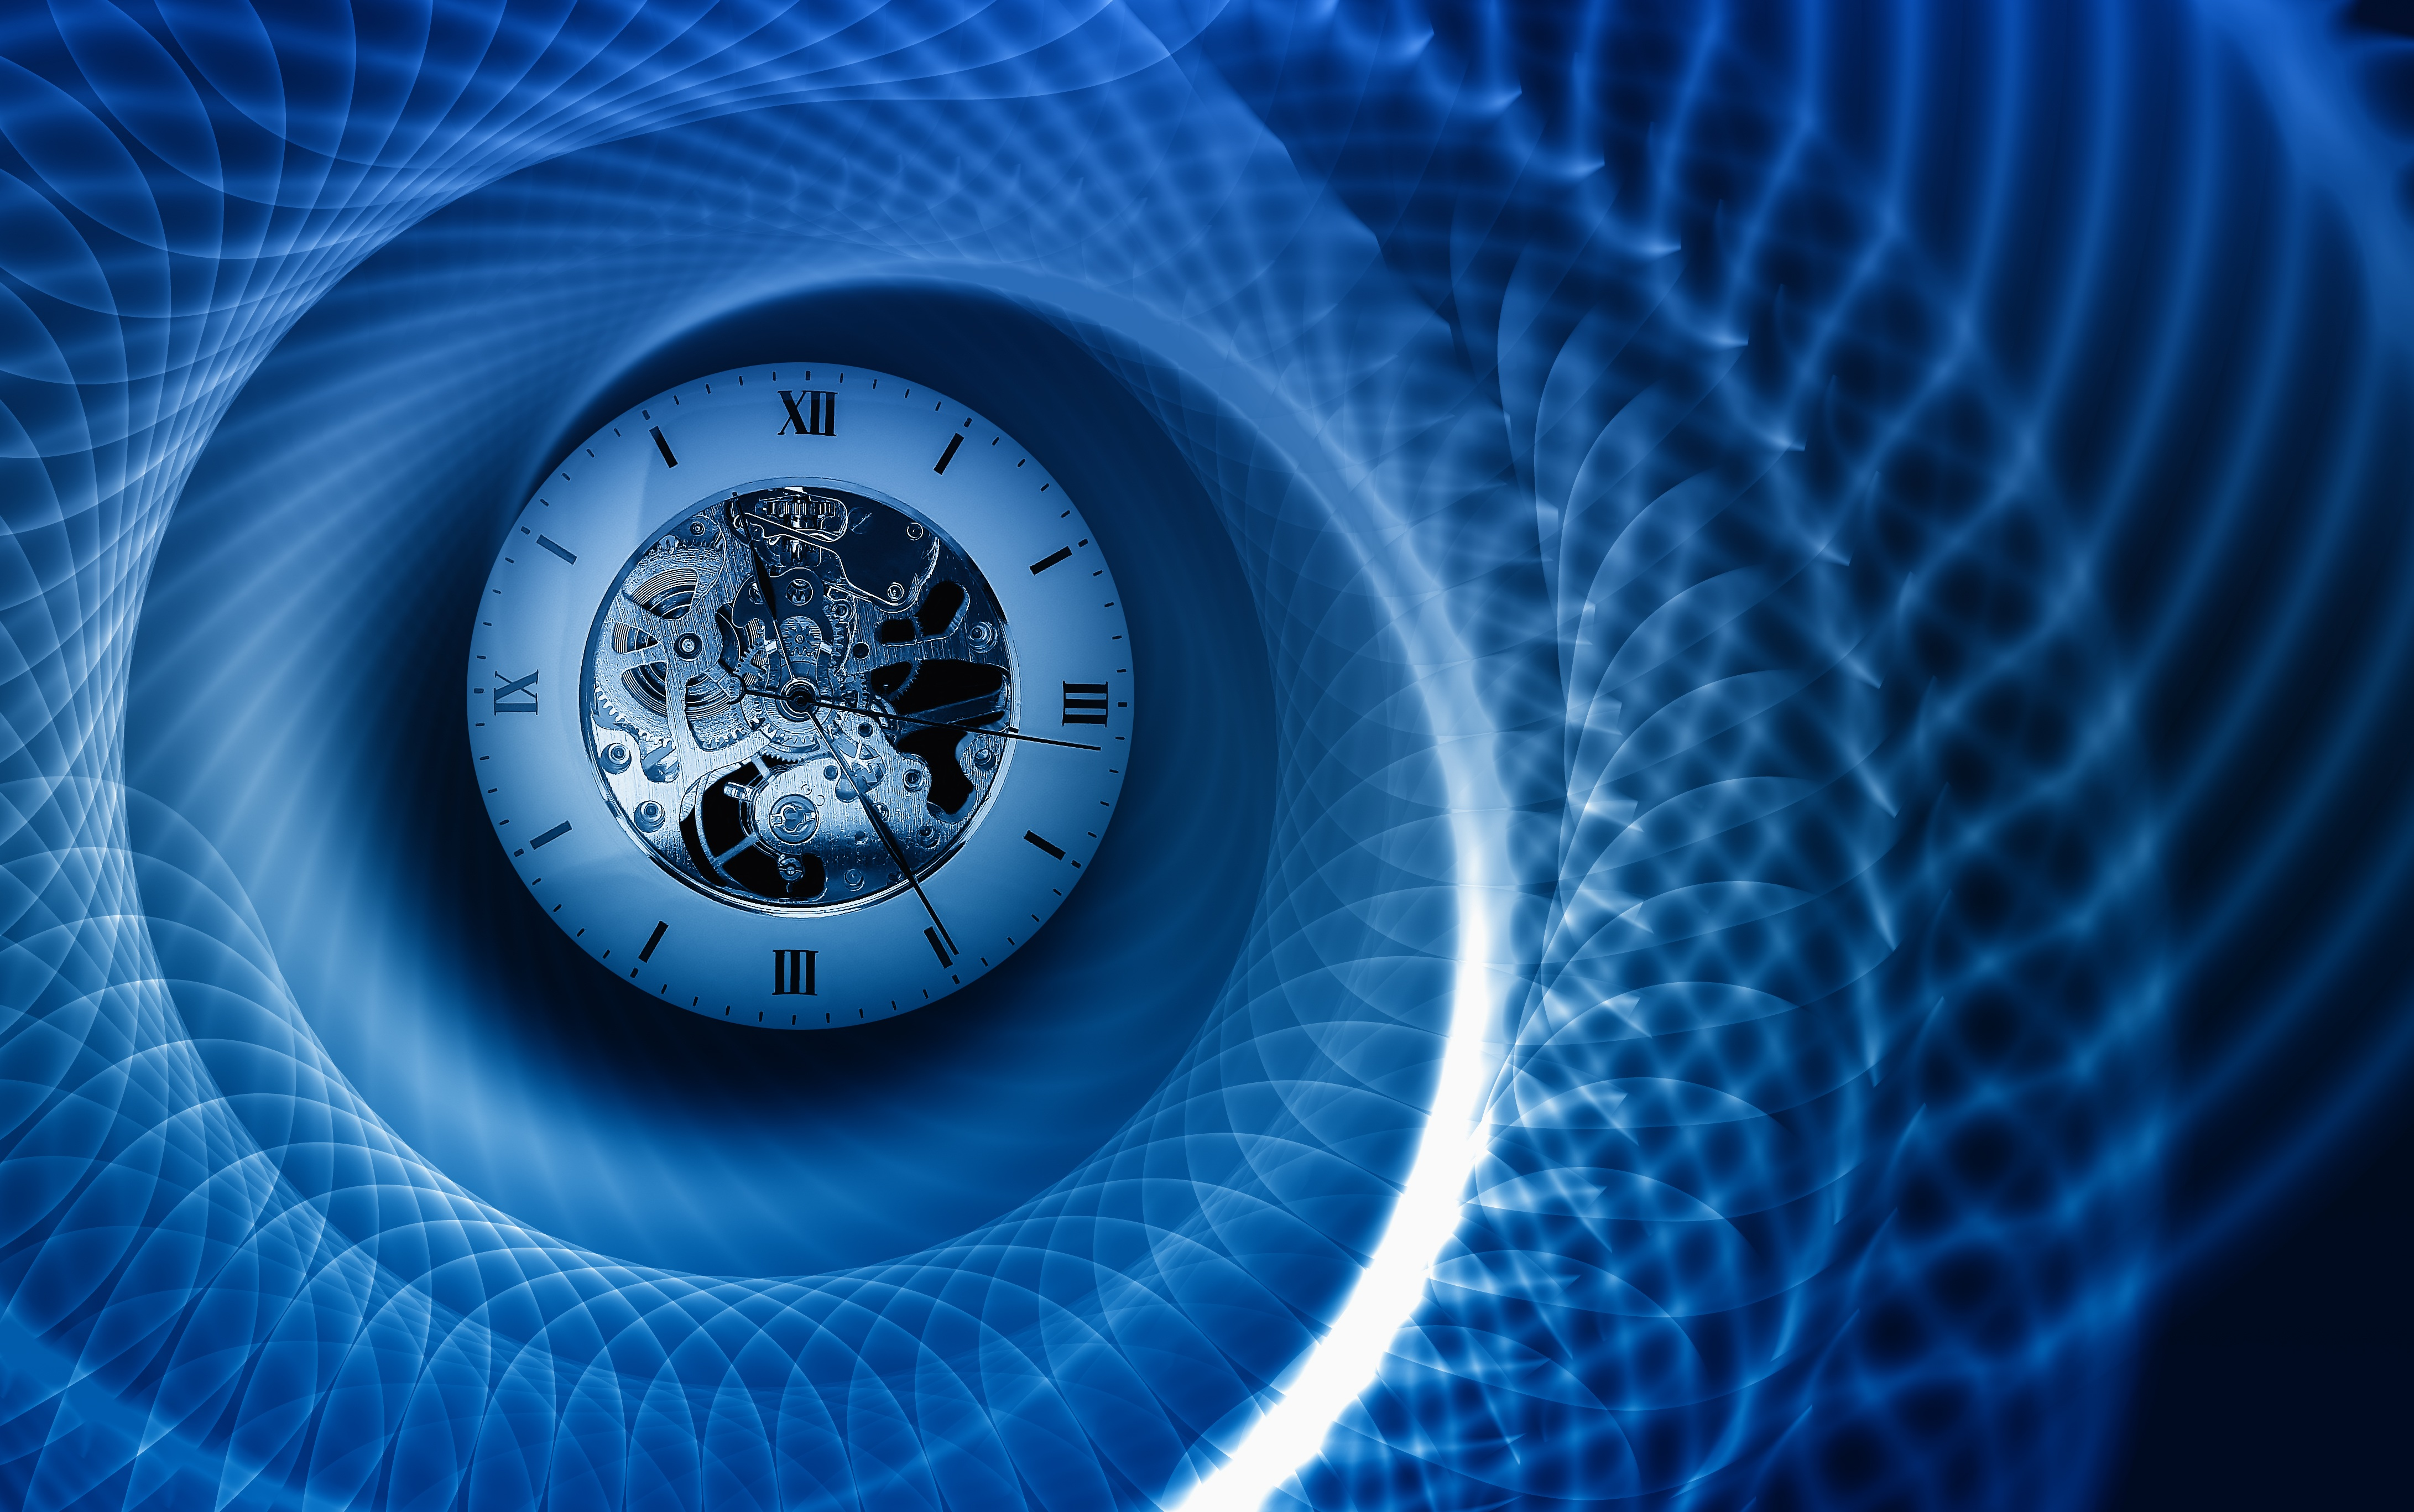 Time spiral image with clock in centre